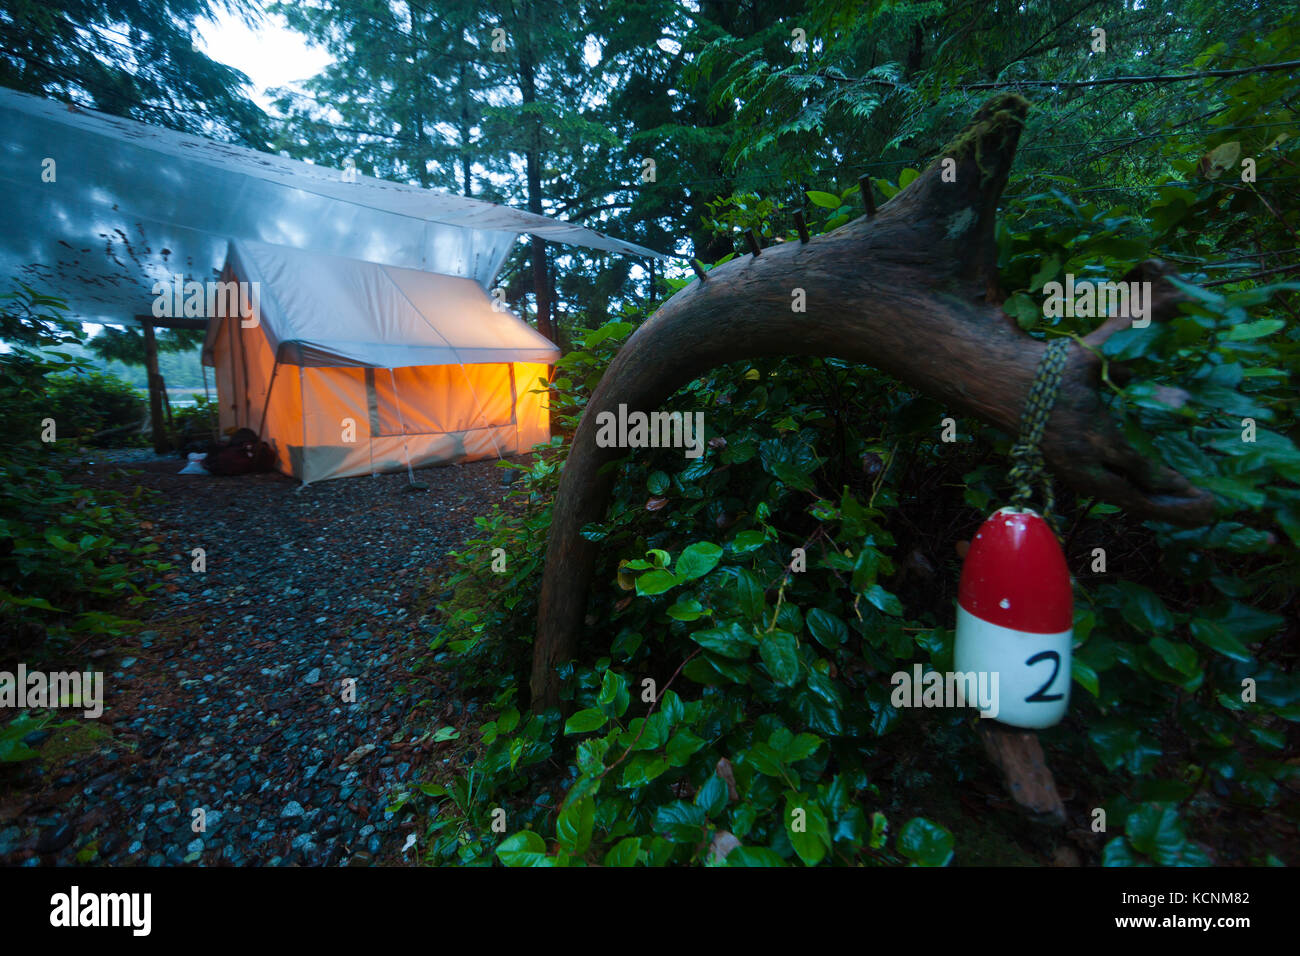 Rustic yet cozy tent camping greets visitors to West Coast Expeditions camp on Spring Island, Kyuquot, Vancouver - Stock Image